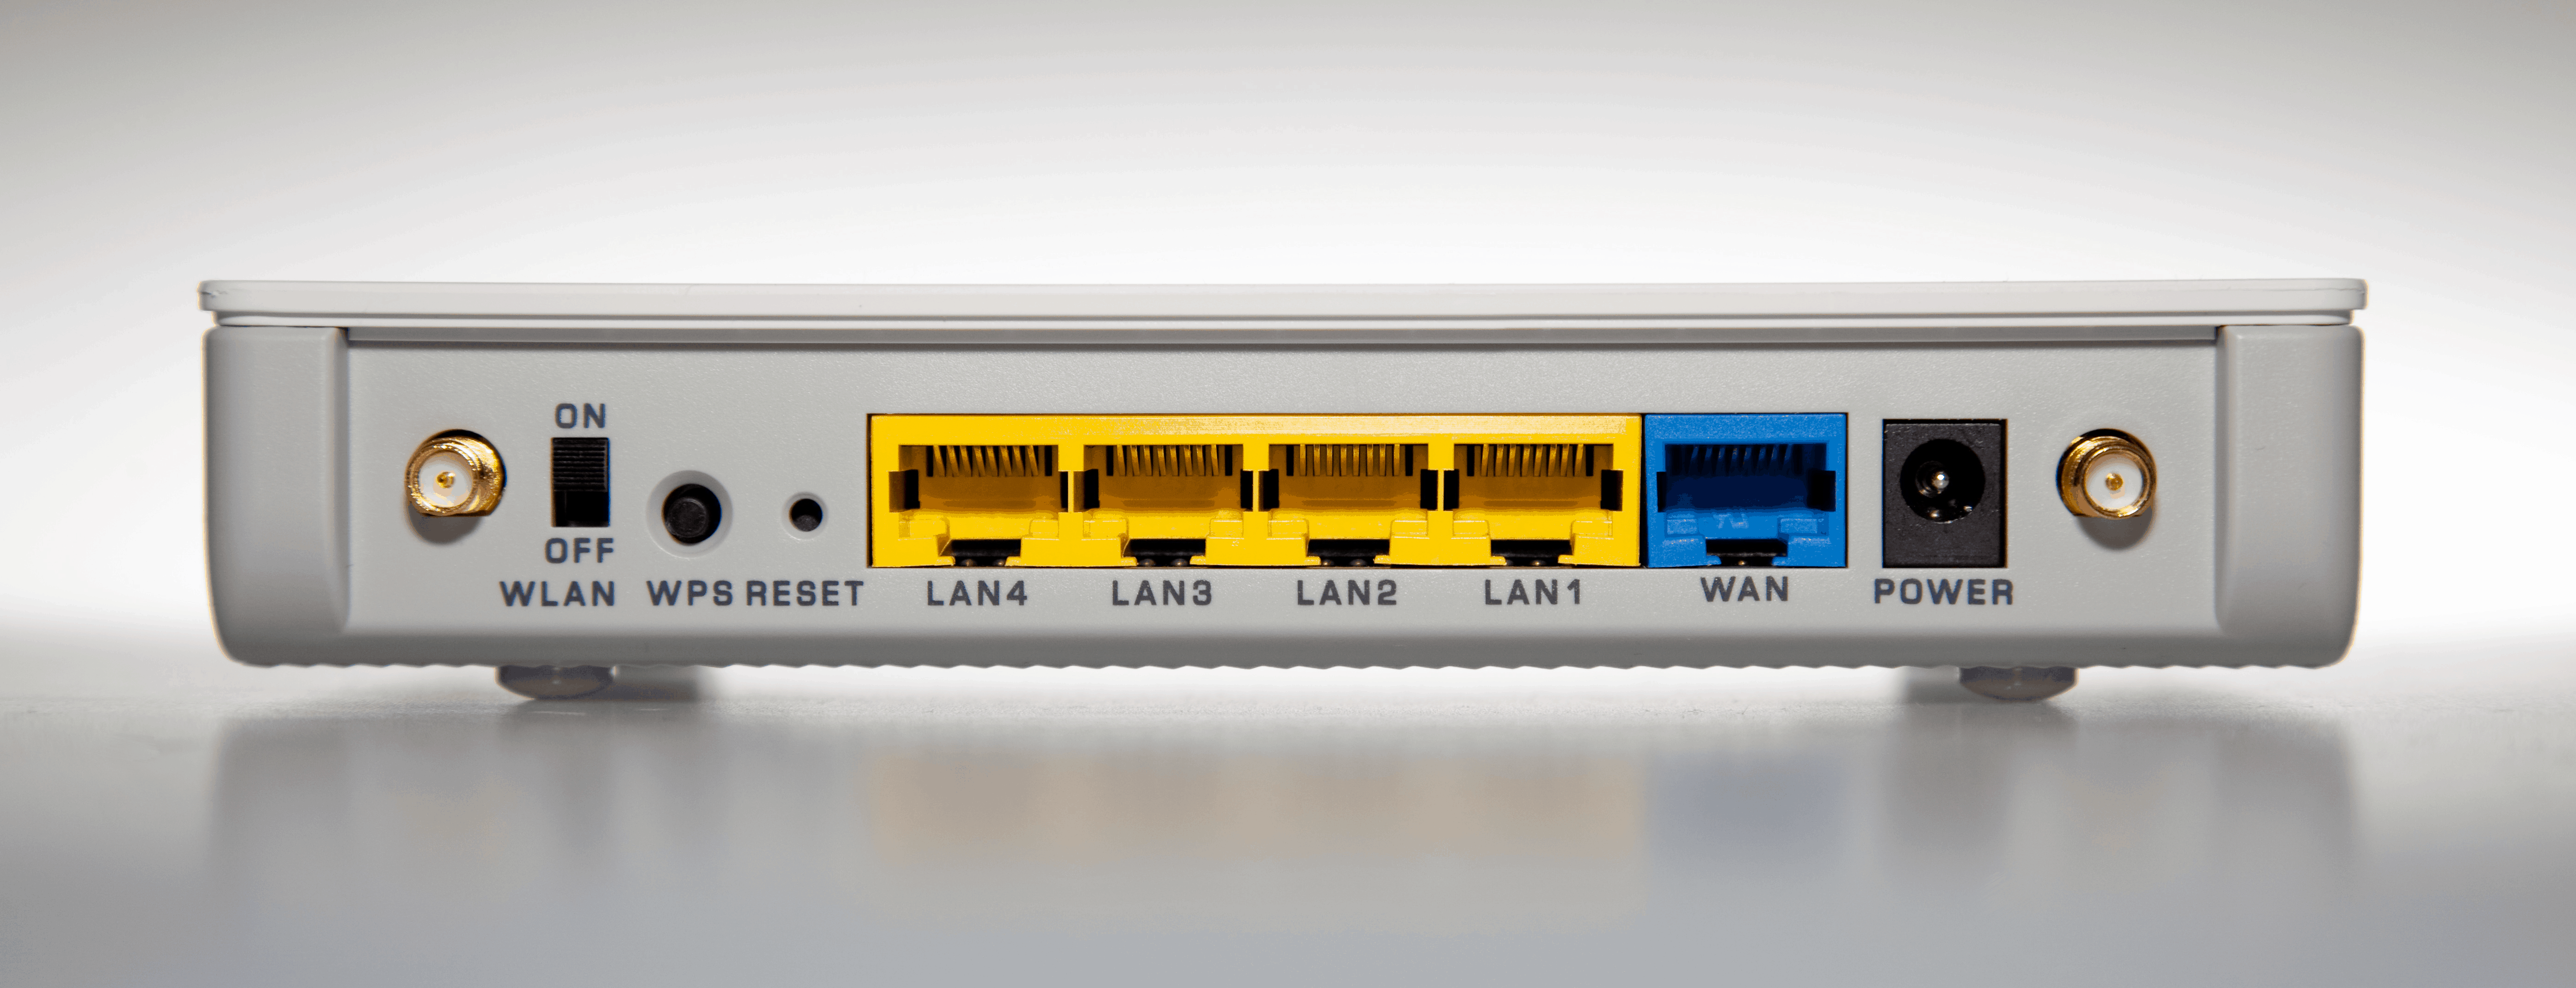 The back of your router should look something like this.